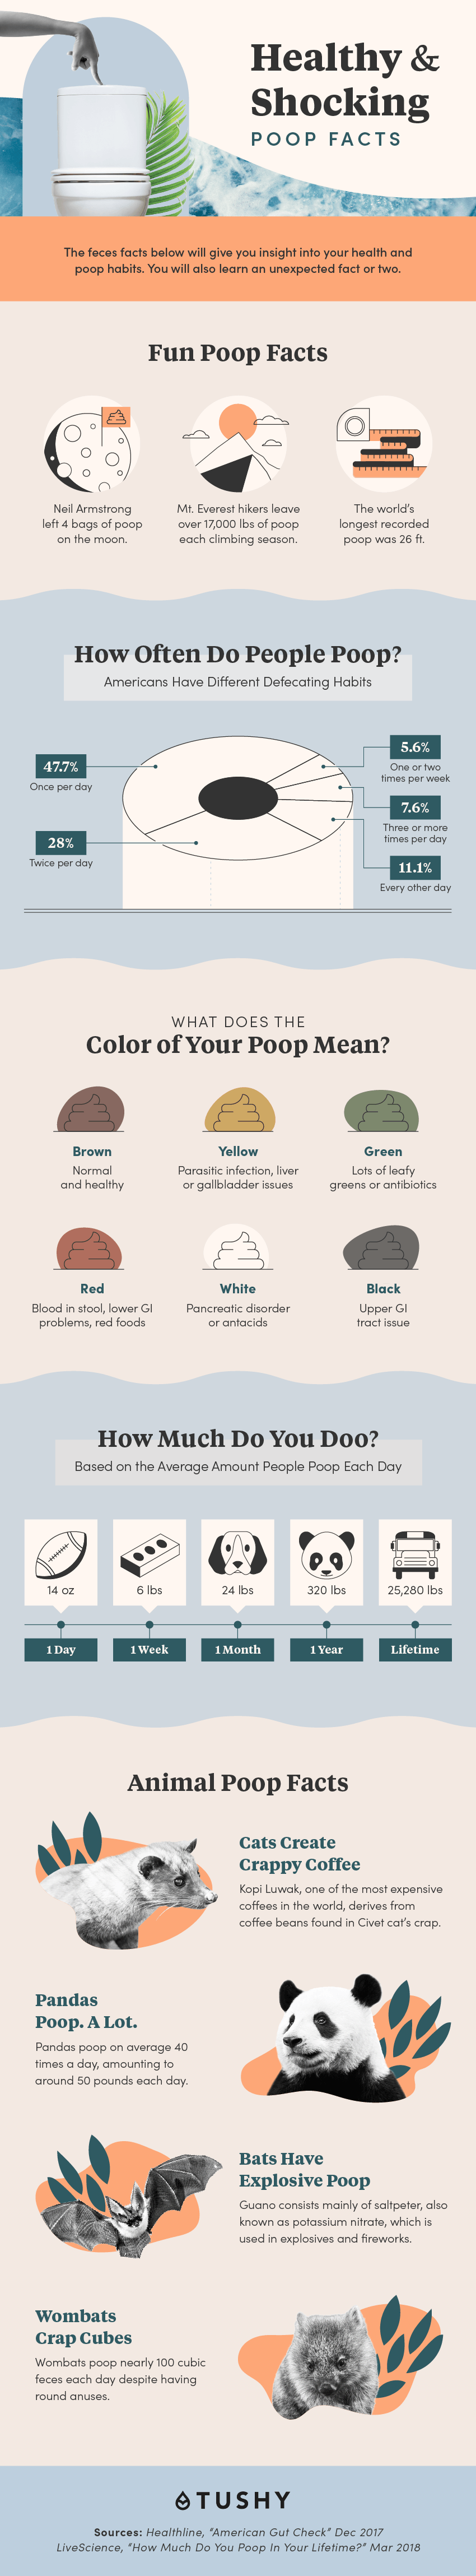 Healthy and shocking poop facts infographic